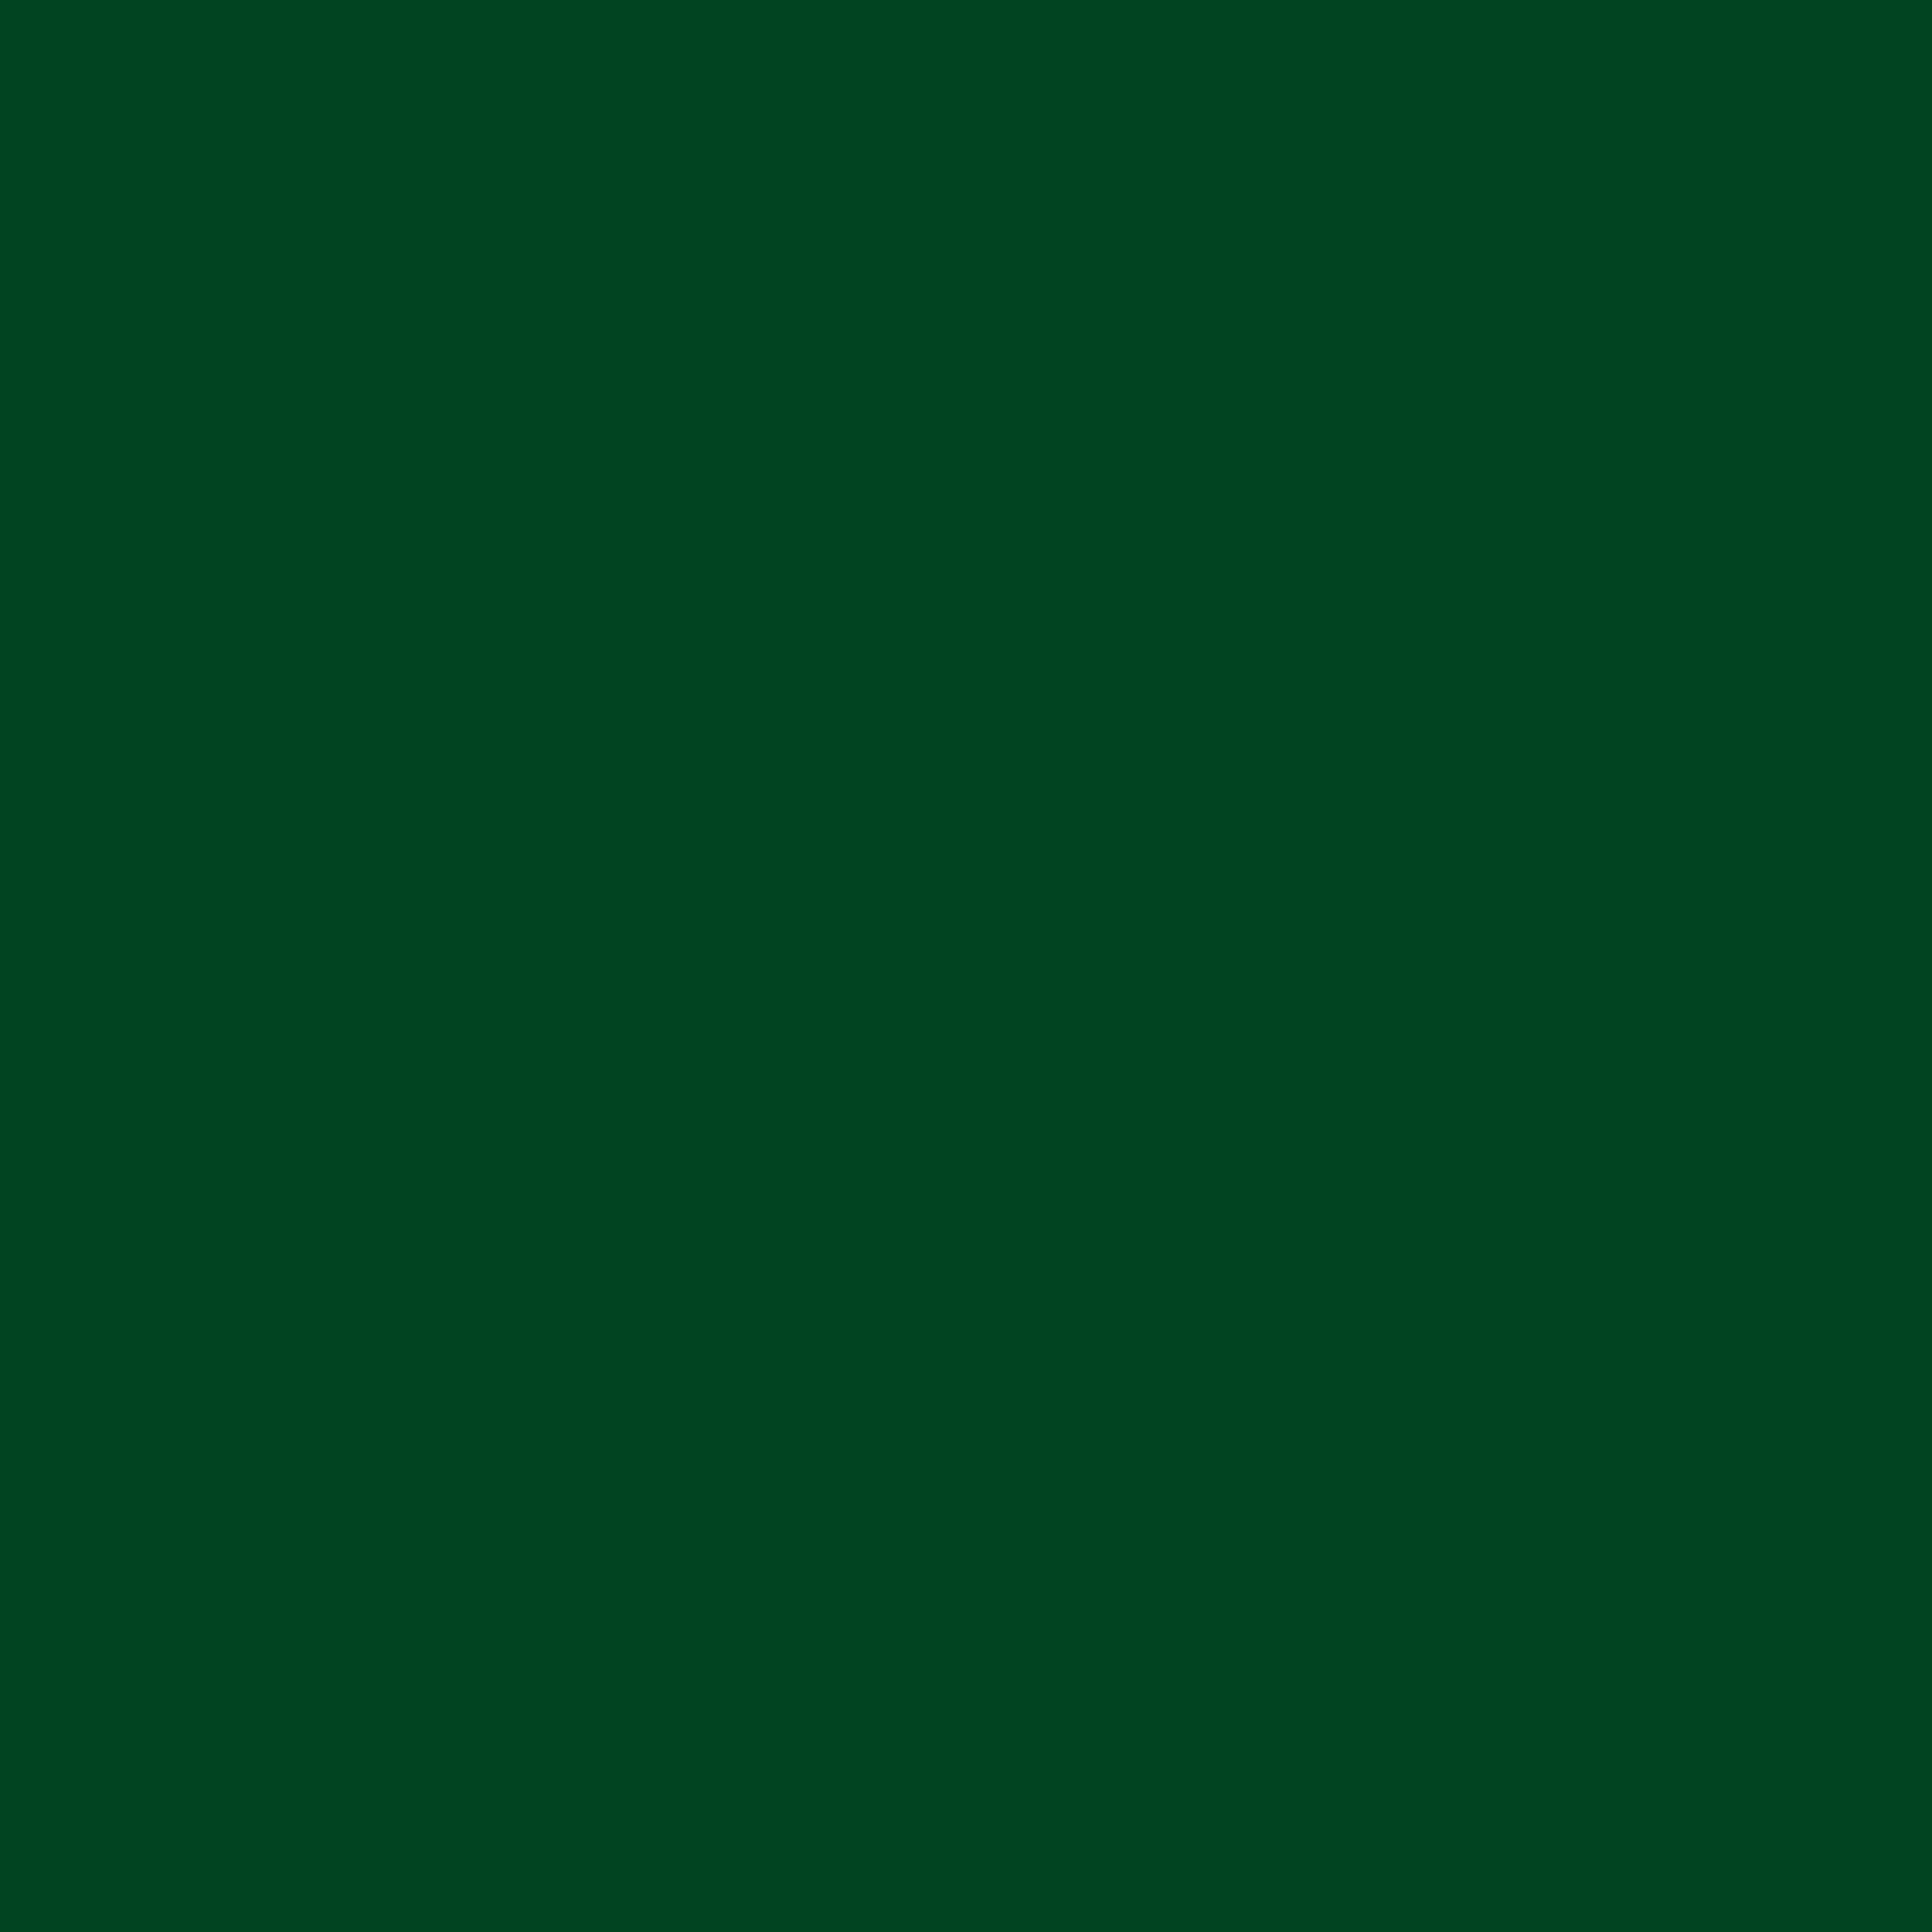 2048x2048 UP Forest Green Solid Color Background